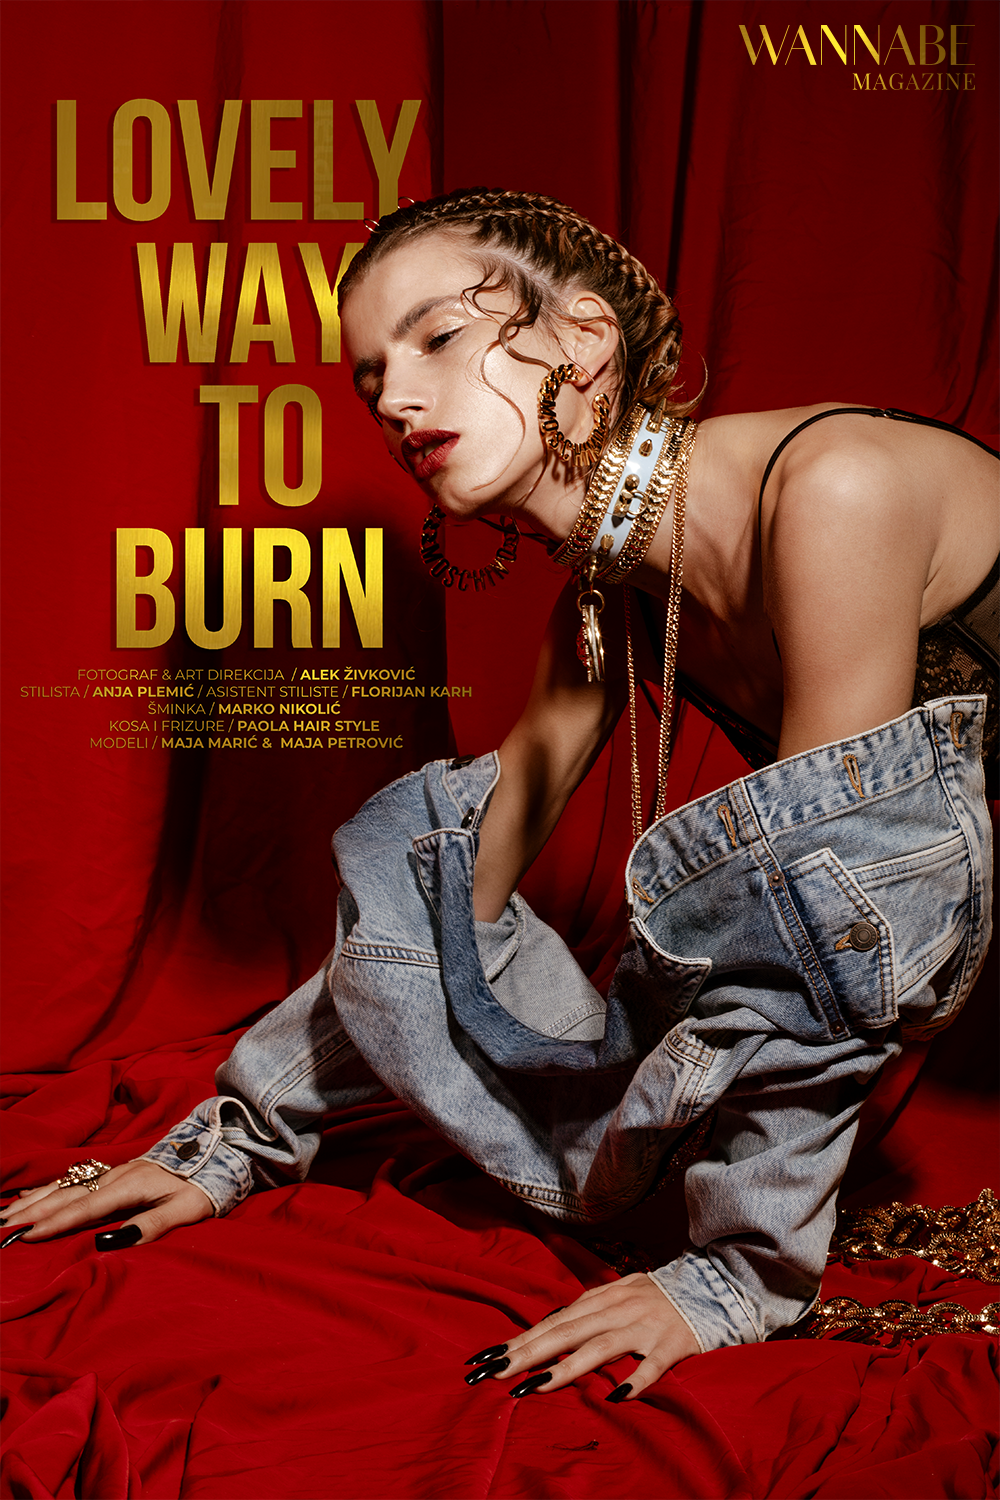 WANNABE EDITORIJAL: Lovely Way To Burn